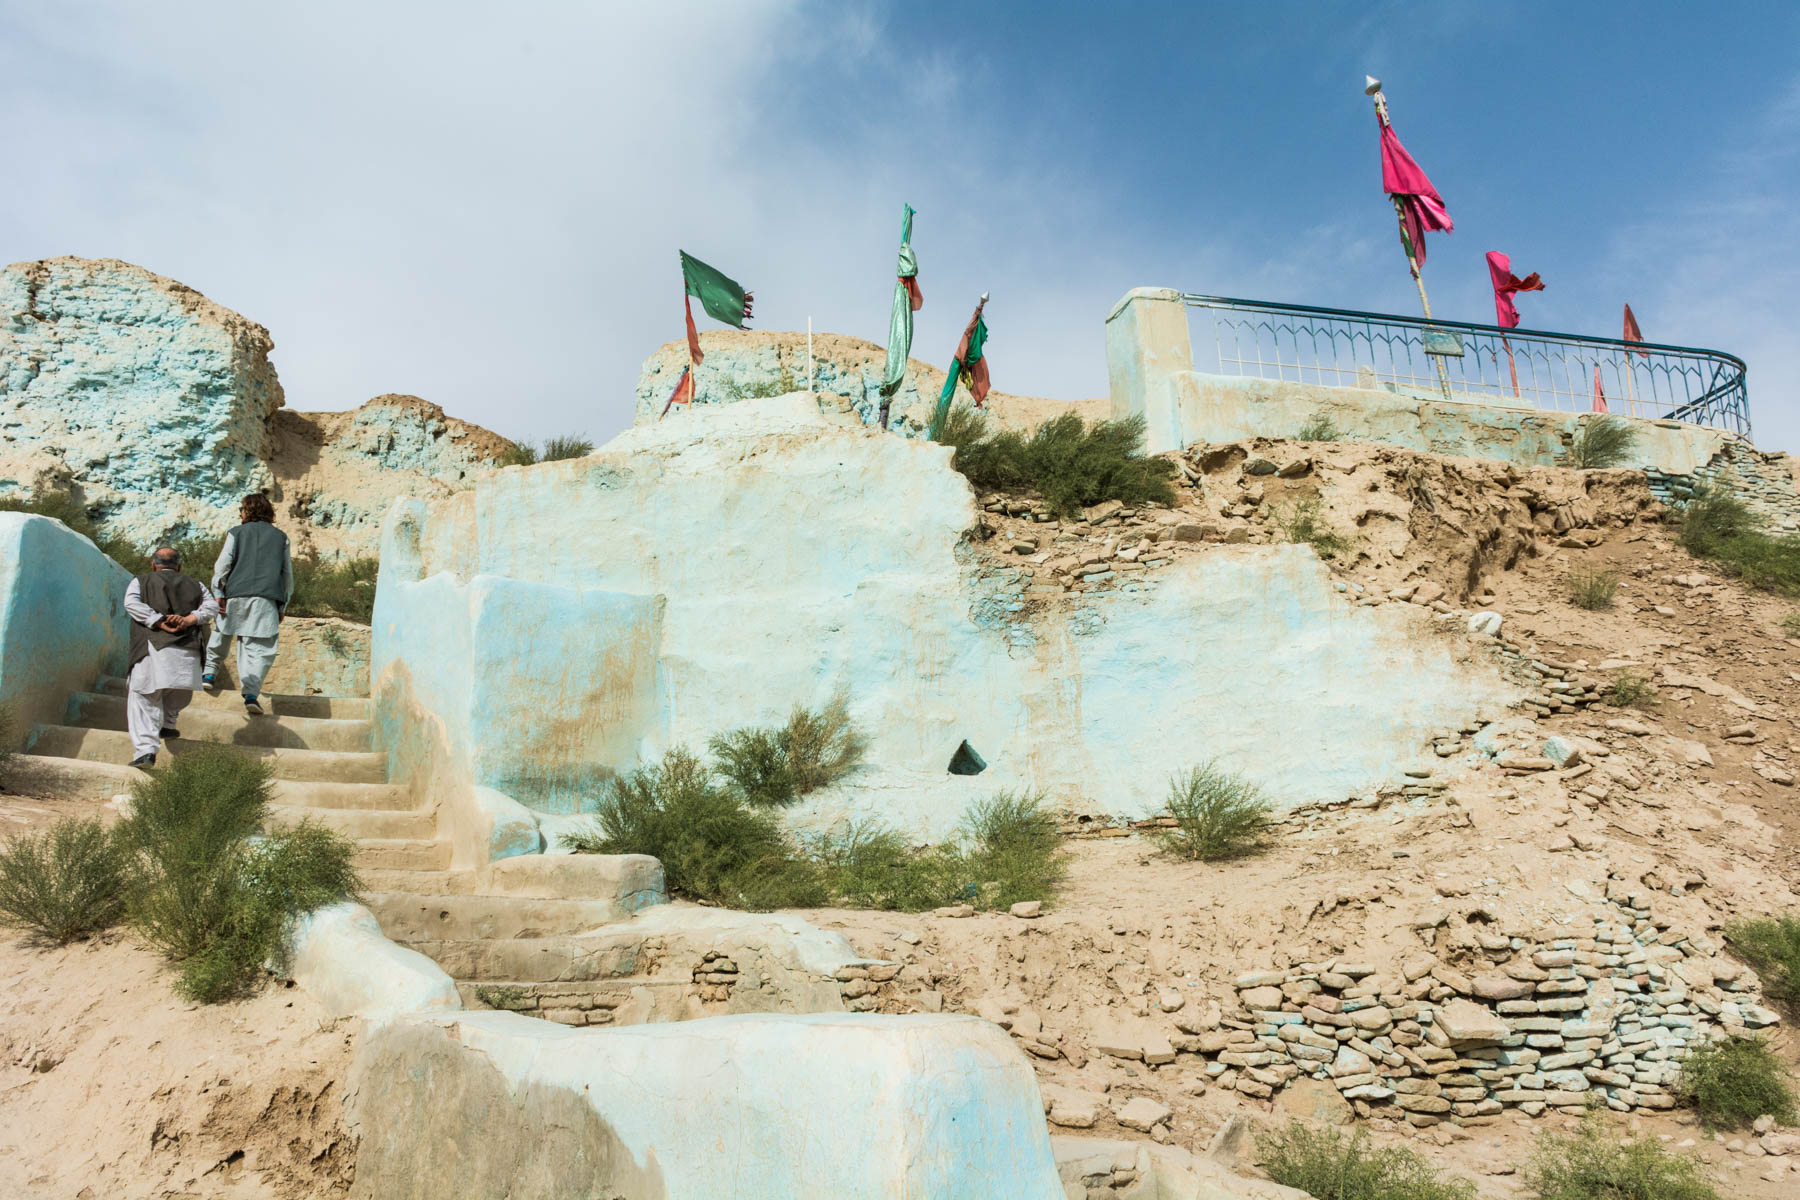 A shrine inside the walls of Old Balkh, Afghanistan - Lost With Purpose